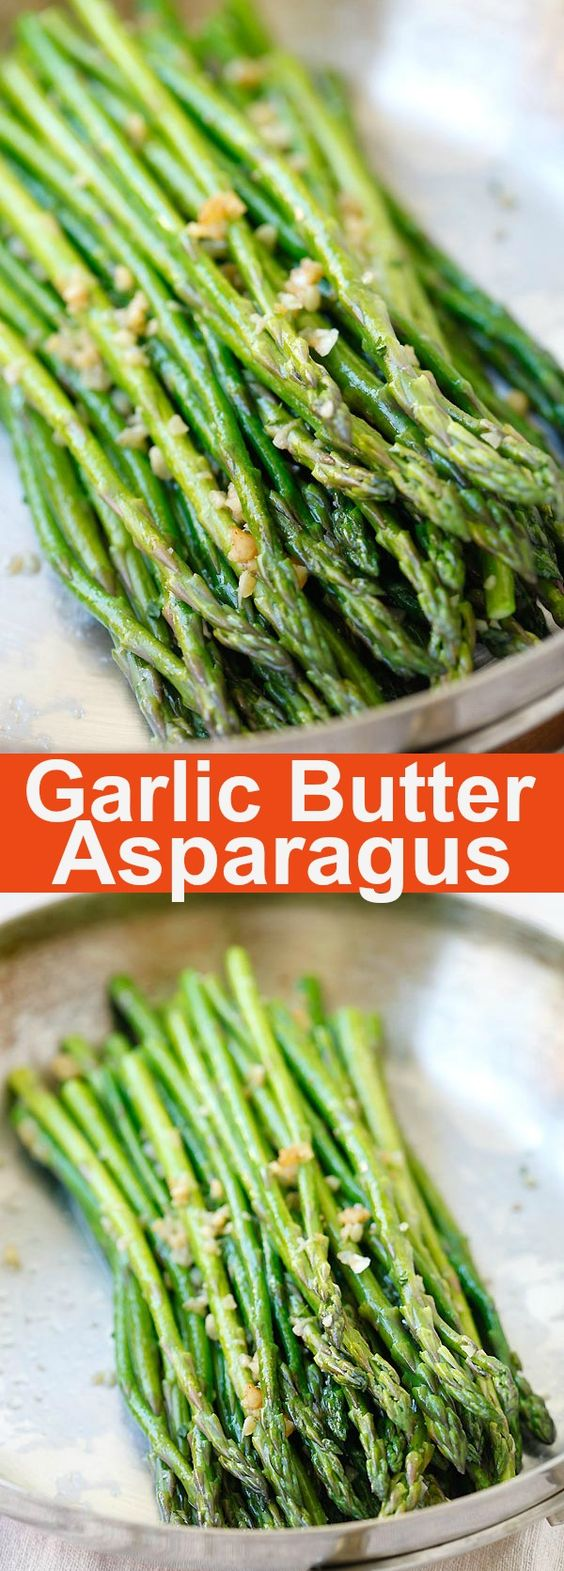 Garlic Butter Sauteed Asparagus #Garlic #Butter #Sauteed #Asparagus Desserts, Healthy Food, Easy Recipes, Dinner, Lauch, Delicious, Easy, Holidays Recipe, Special Diet, World Cuisine, Cake, Grill, Appetizers, Healthy Recipes, Drinks, Cooking Method, Italian Recipes, Meat, Vegan Recipes, Cookies, Pasta Recipes, Fruit, Salad, Soup Appetizers, Non Alcoholic Drinks, Meal Planning, Vegetables, Soup, Pastry, Chocolate, Dairy, Alcoholic Drinks, Bulgur Salad, Baking, Snacks, Beef Recipes, Meat Appetizers, Mexican Recipes, Bread, Asian Recipes, Seafood Appetizers, Muffins, Breakfast And Brunch, Condiments, Cupcakes, Cheese, Chicken Recipes, Pie, Coffee, No Bake Desserts, Healthy Snacks, Seafood, Grain, Lunches Dinners, Mexican, Quick Bread, Liquor